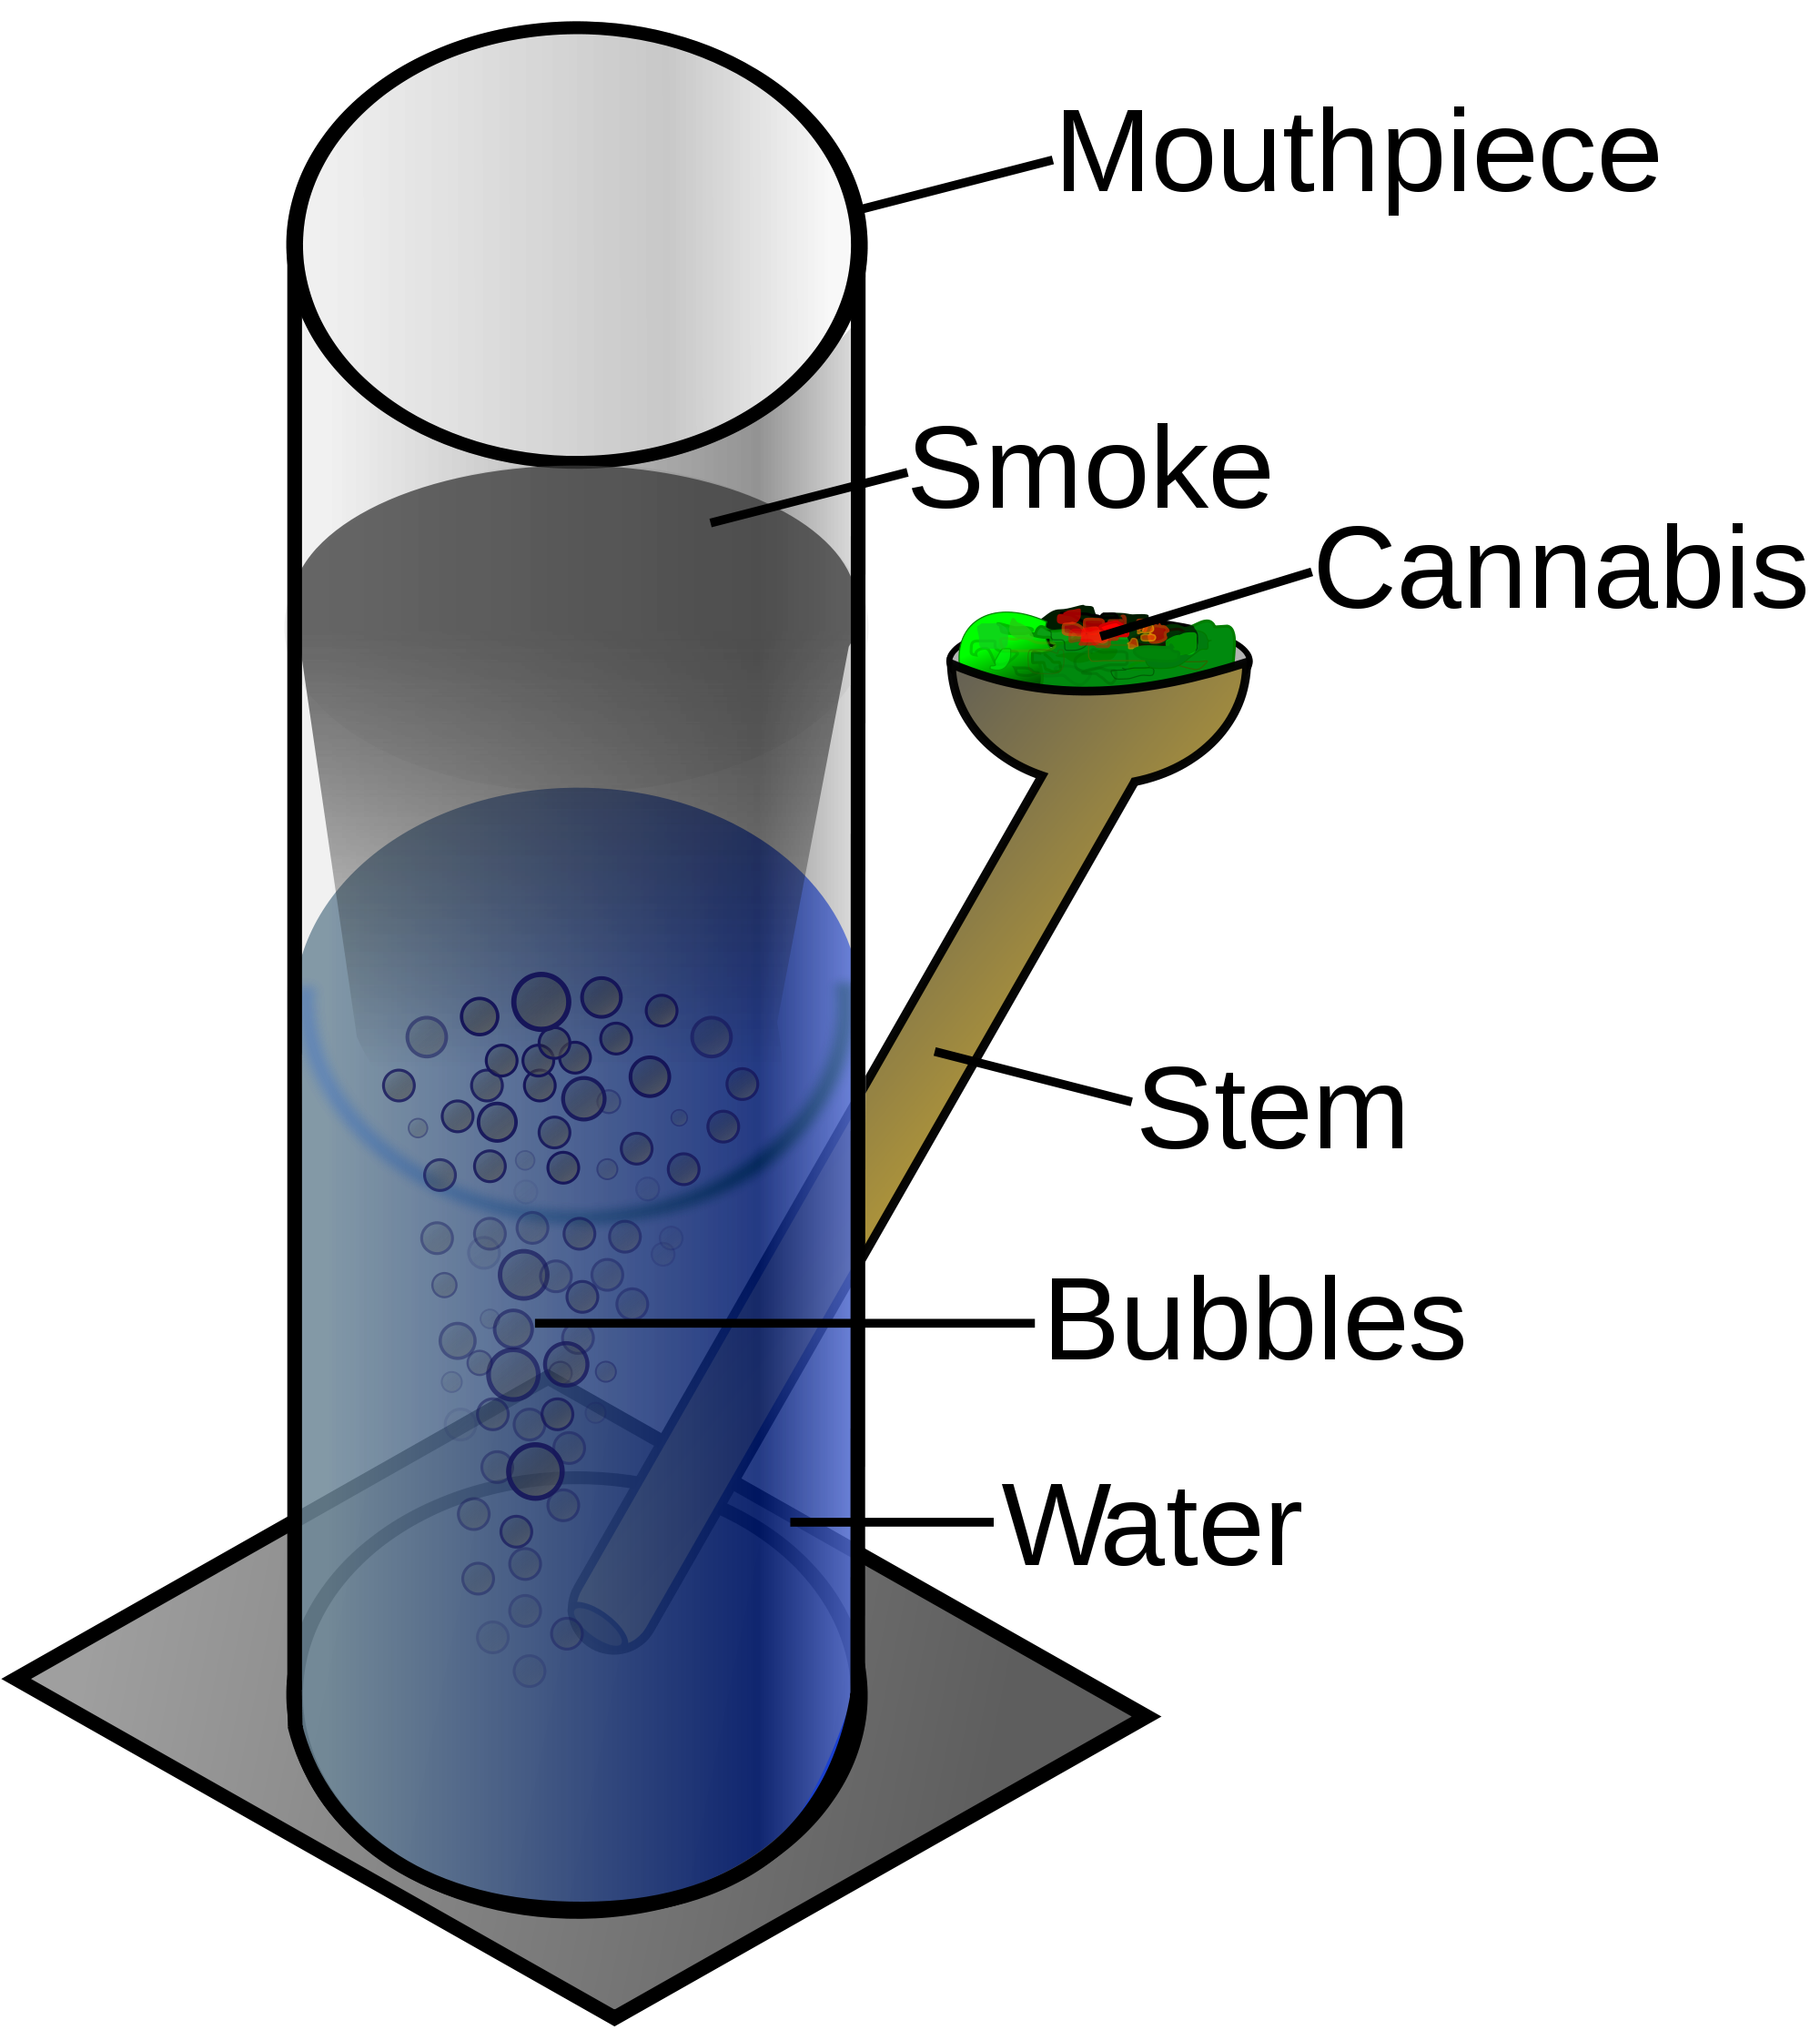 Transparent bong svg. File wikimedia commons open